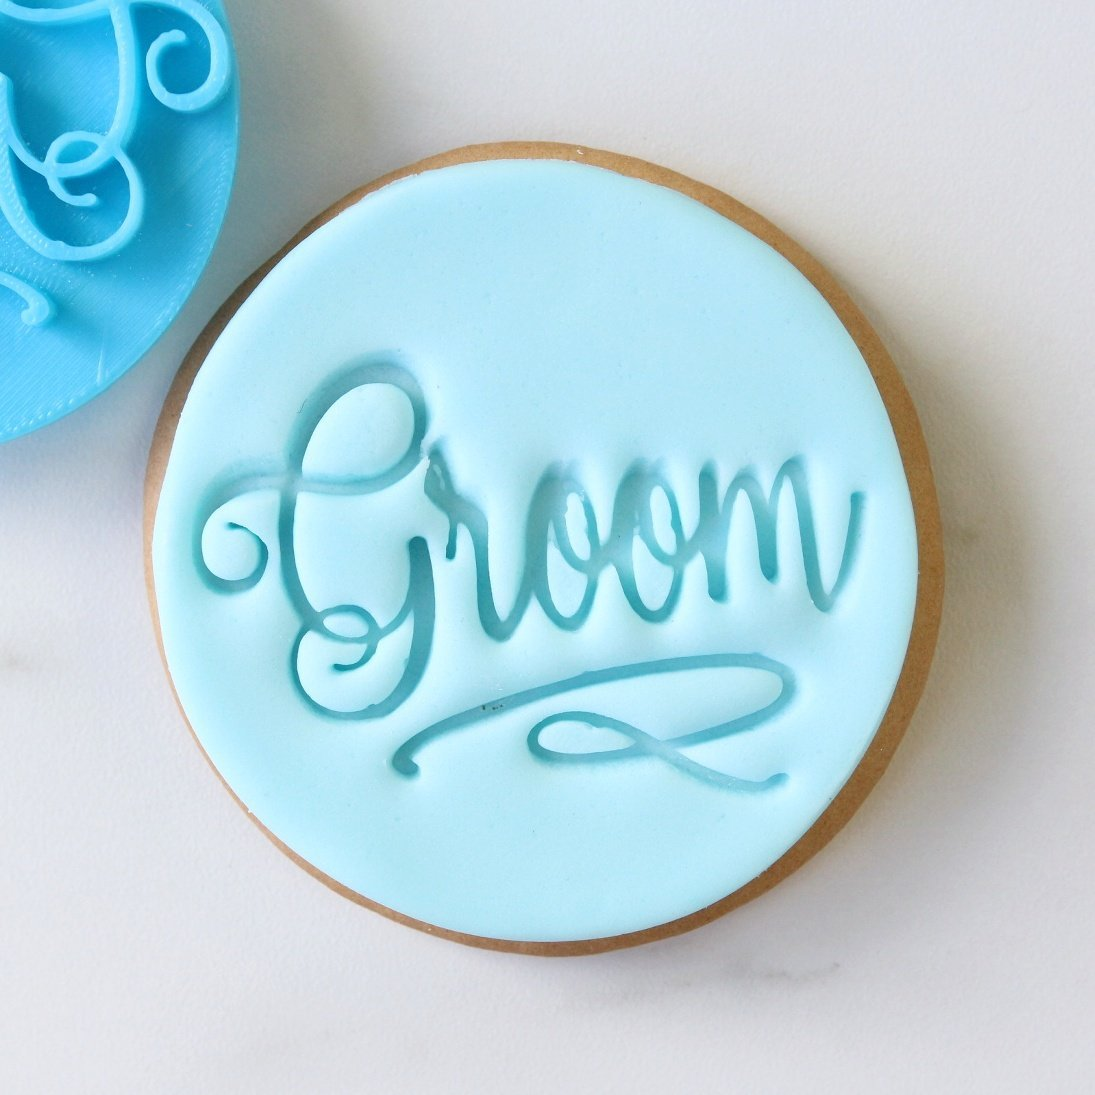 SWEET STAMP - Groom Cookie/Cupcake Embosser